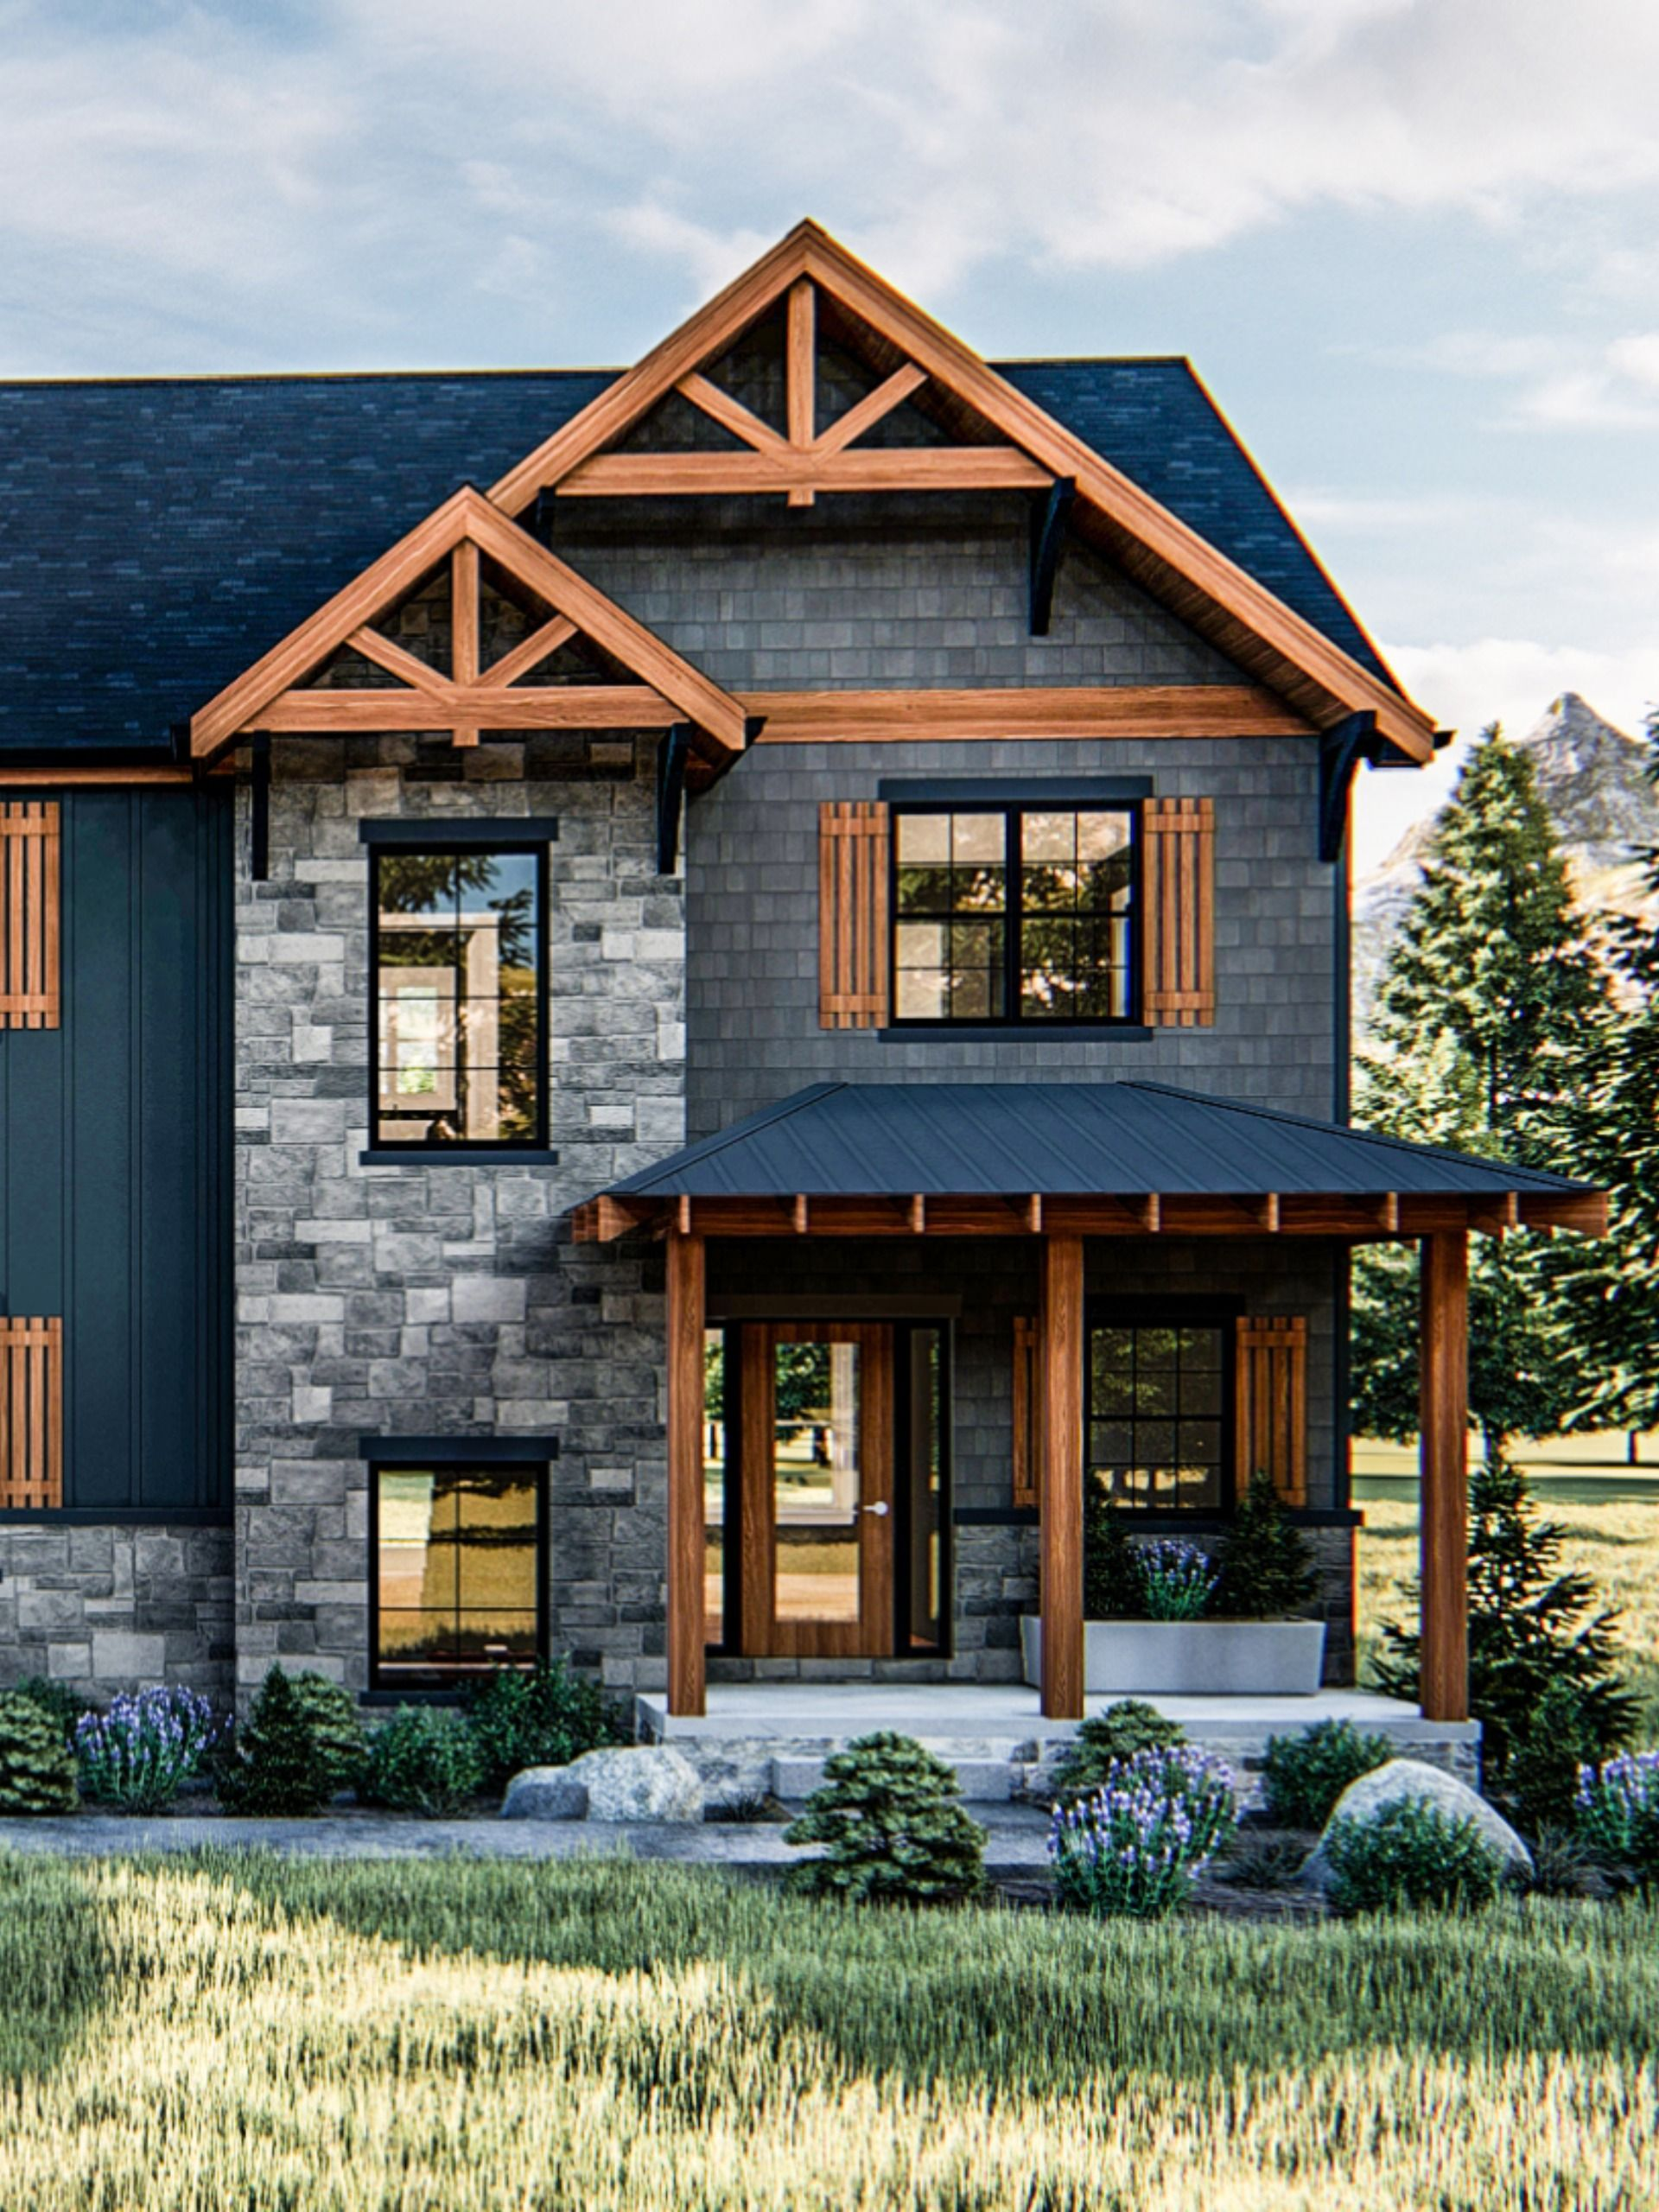 The Best Craftsman House Plans In 2020 Craftsman House Plans Craftsman House Advanced House Plans